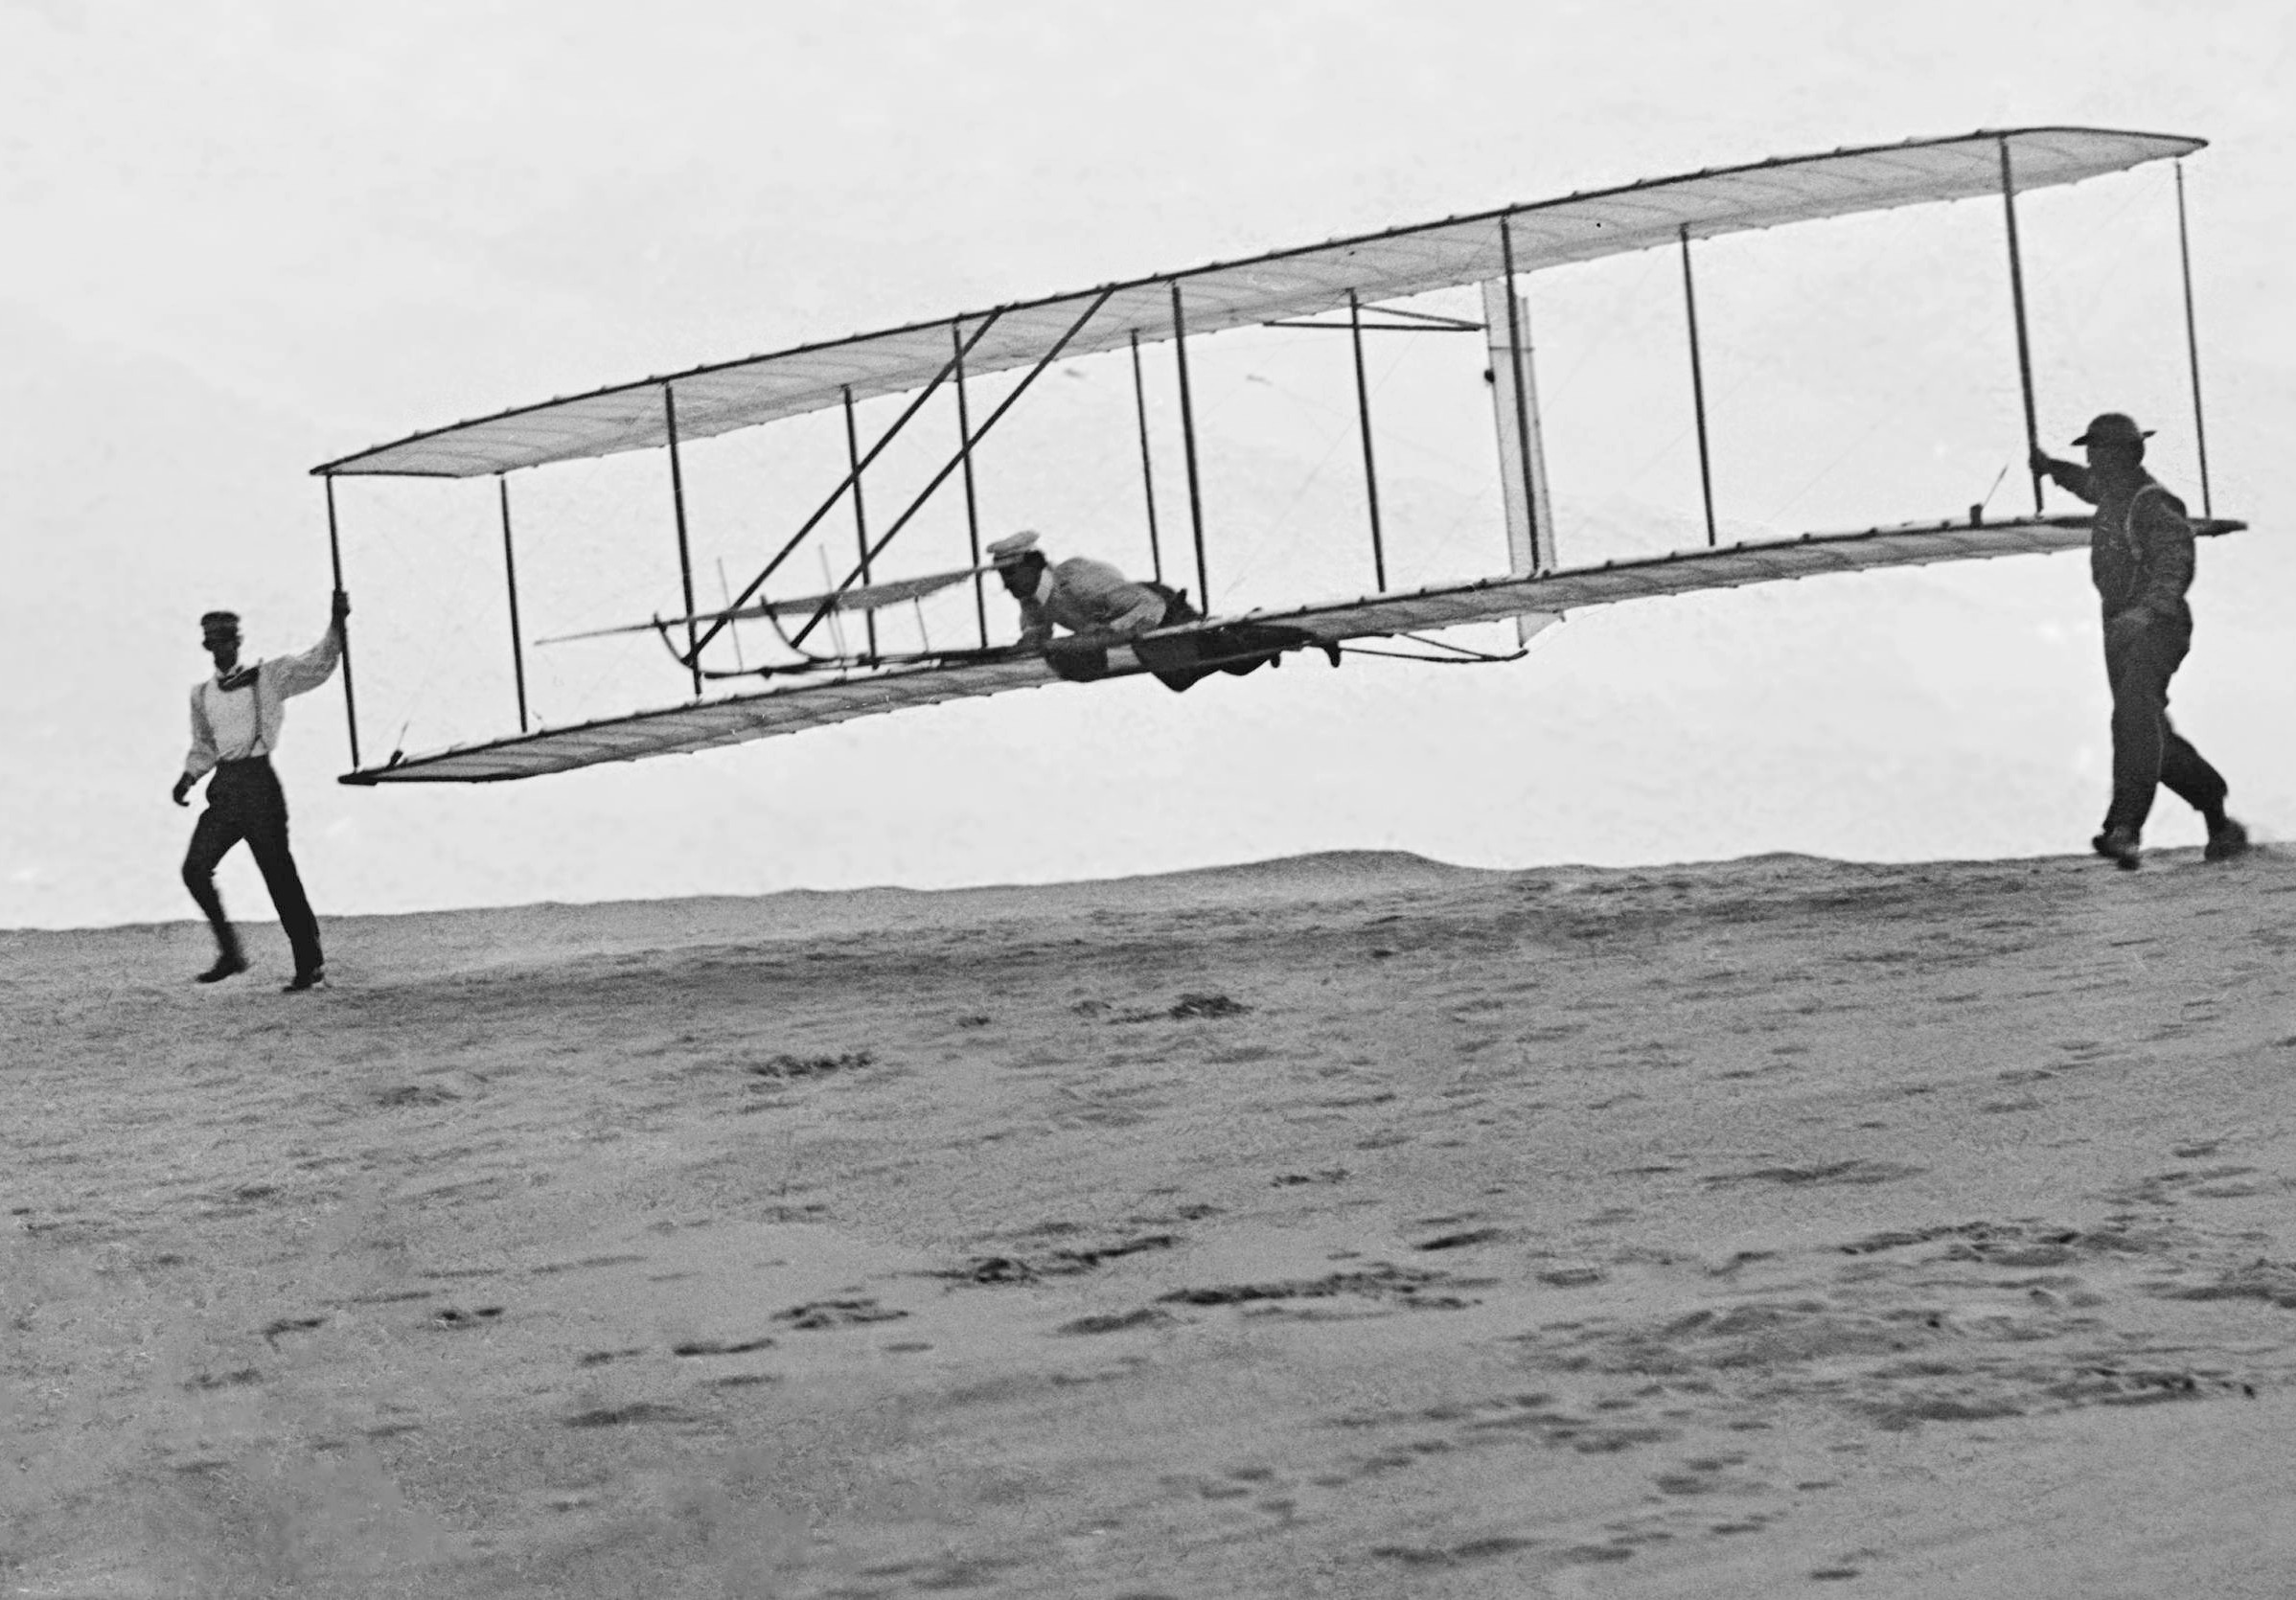 1902 Wright Brothers' Glider Tests - GPN-2002-000125.jpg